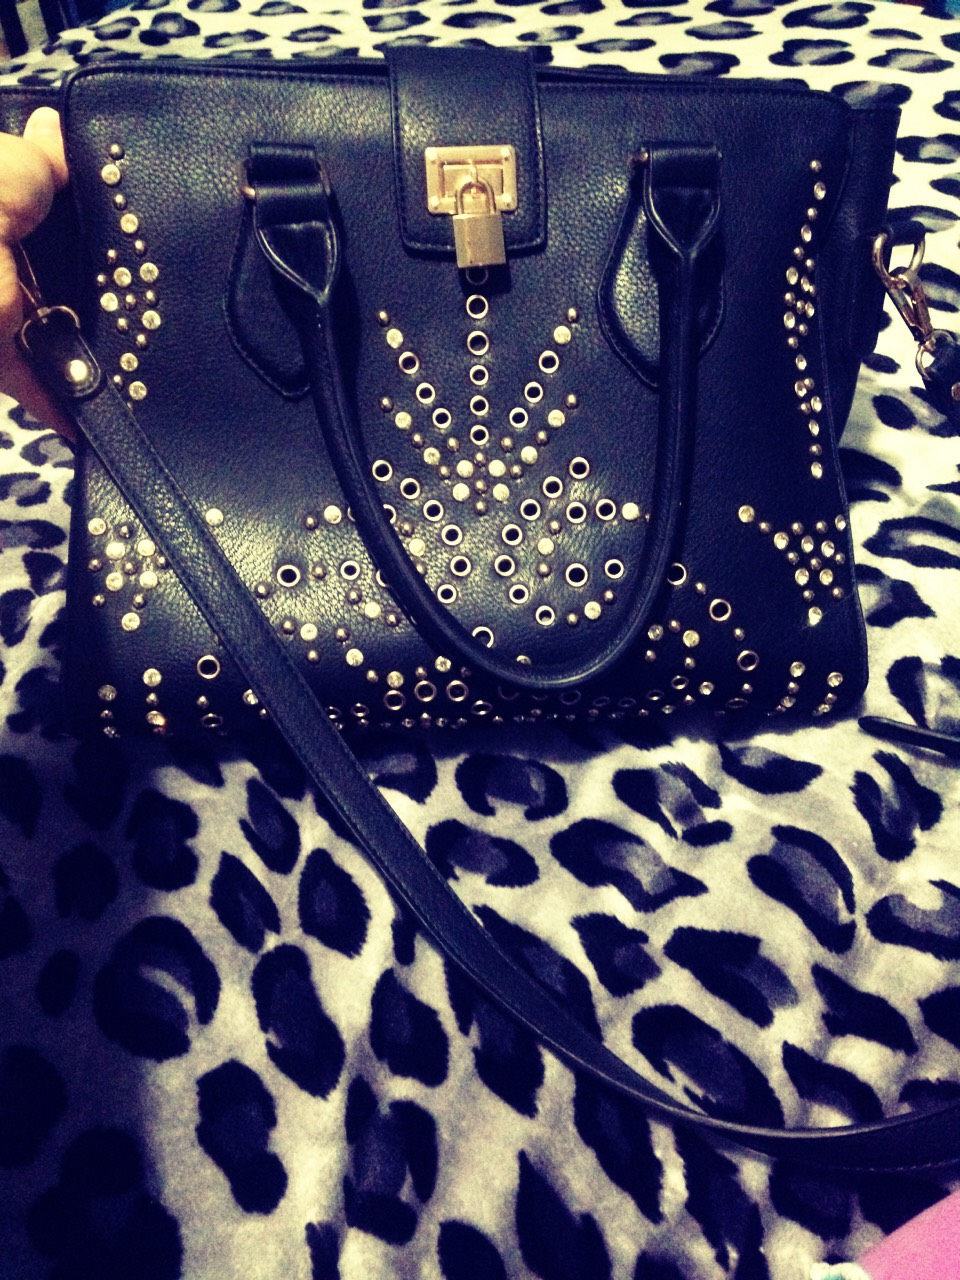 This is my ZIARA bag and its in the color black realy big and pretty. It has nice touches such as  fashion diamonds and the studs has a long strap as well  Got it for only $65  Can find it o. Ebay & Amazon